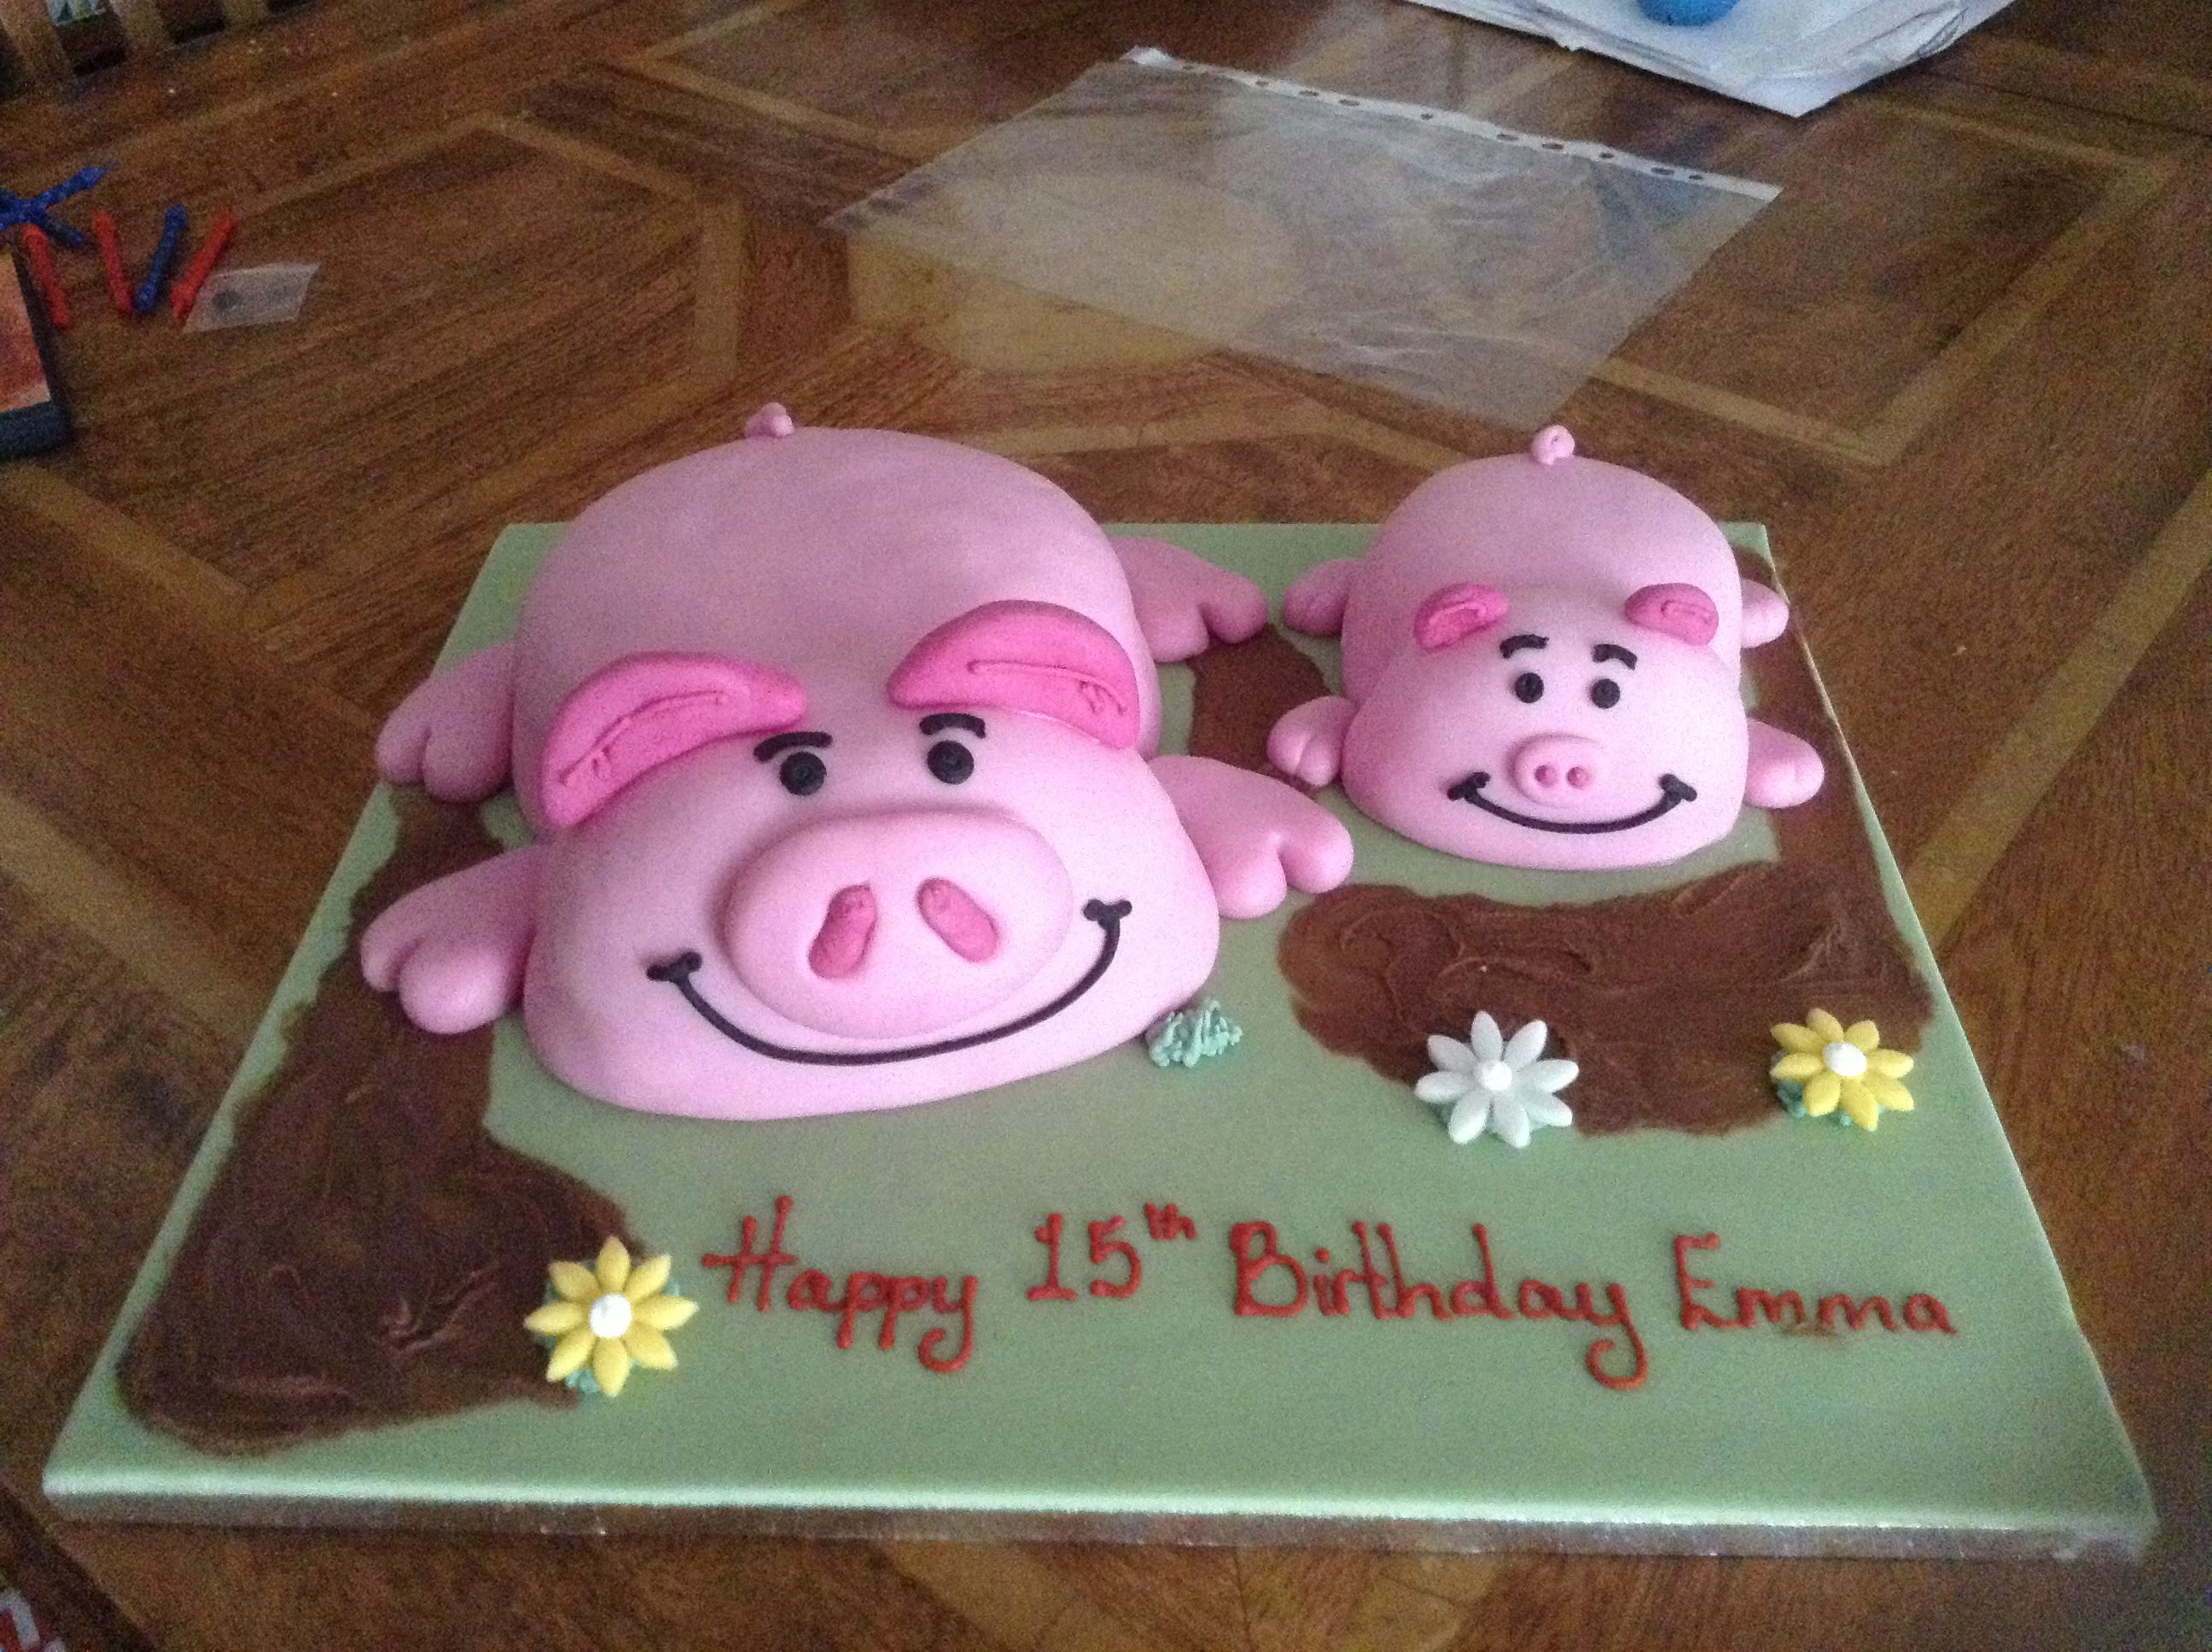 My Sisters Birthday Cake She Loves Percy Pigs So We Got Her A - Owl percy pig birthday cake